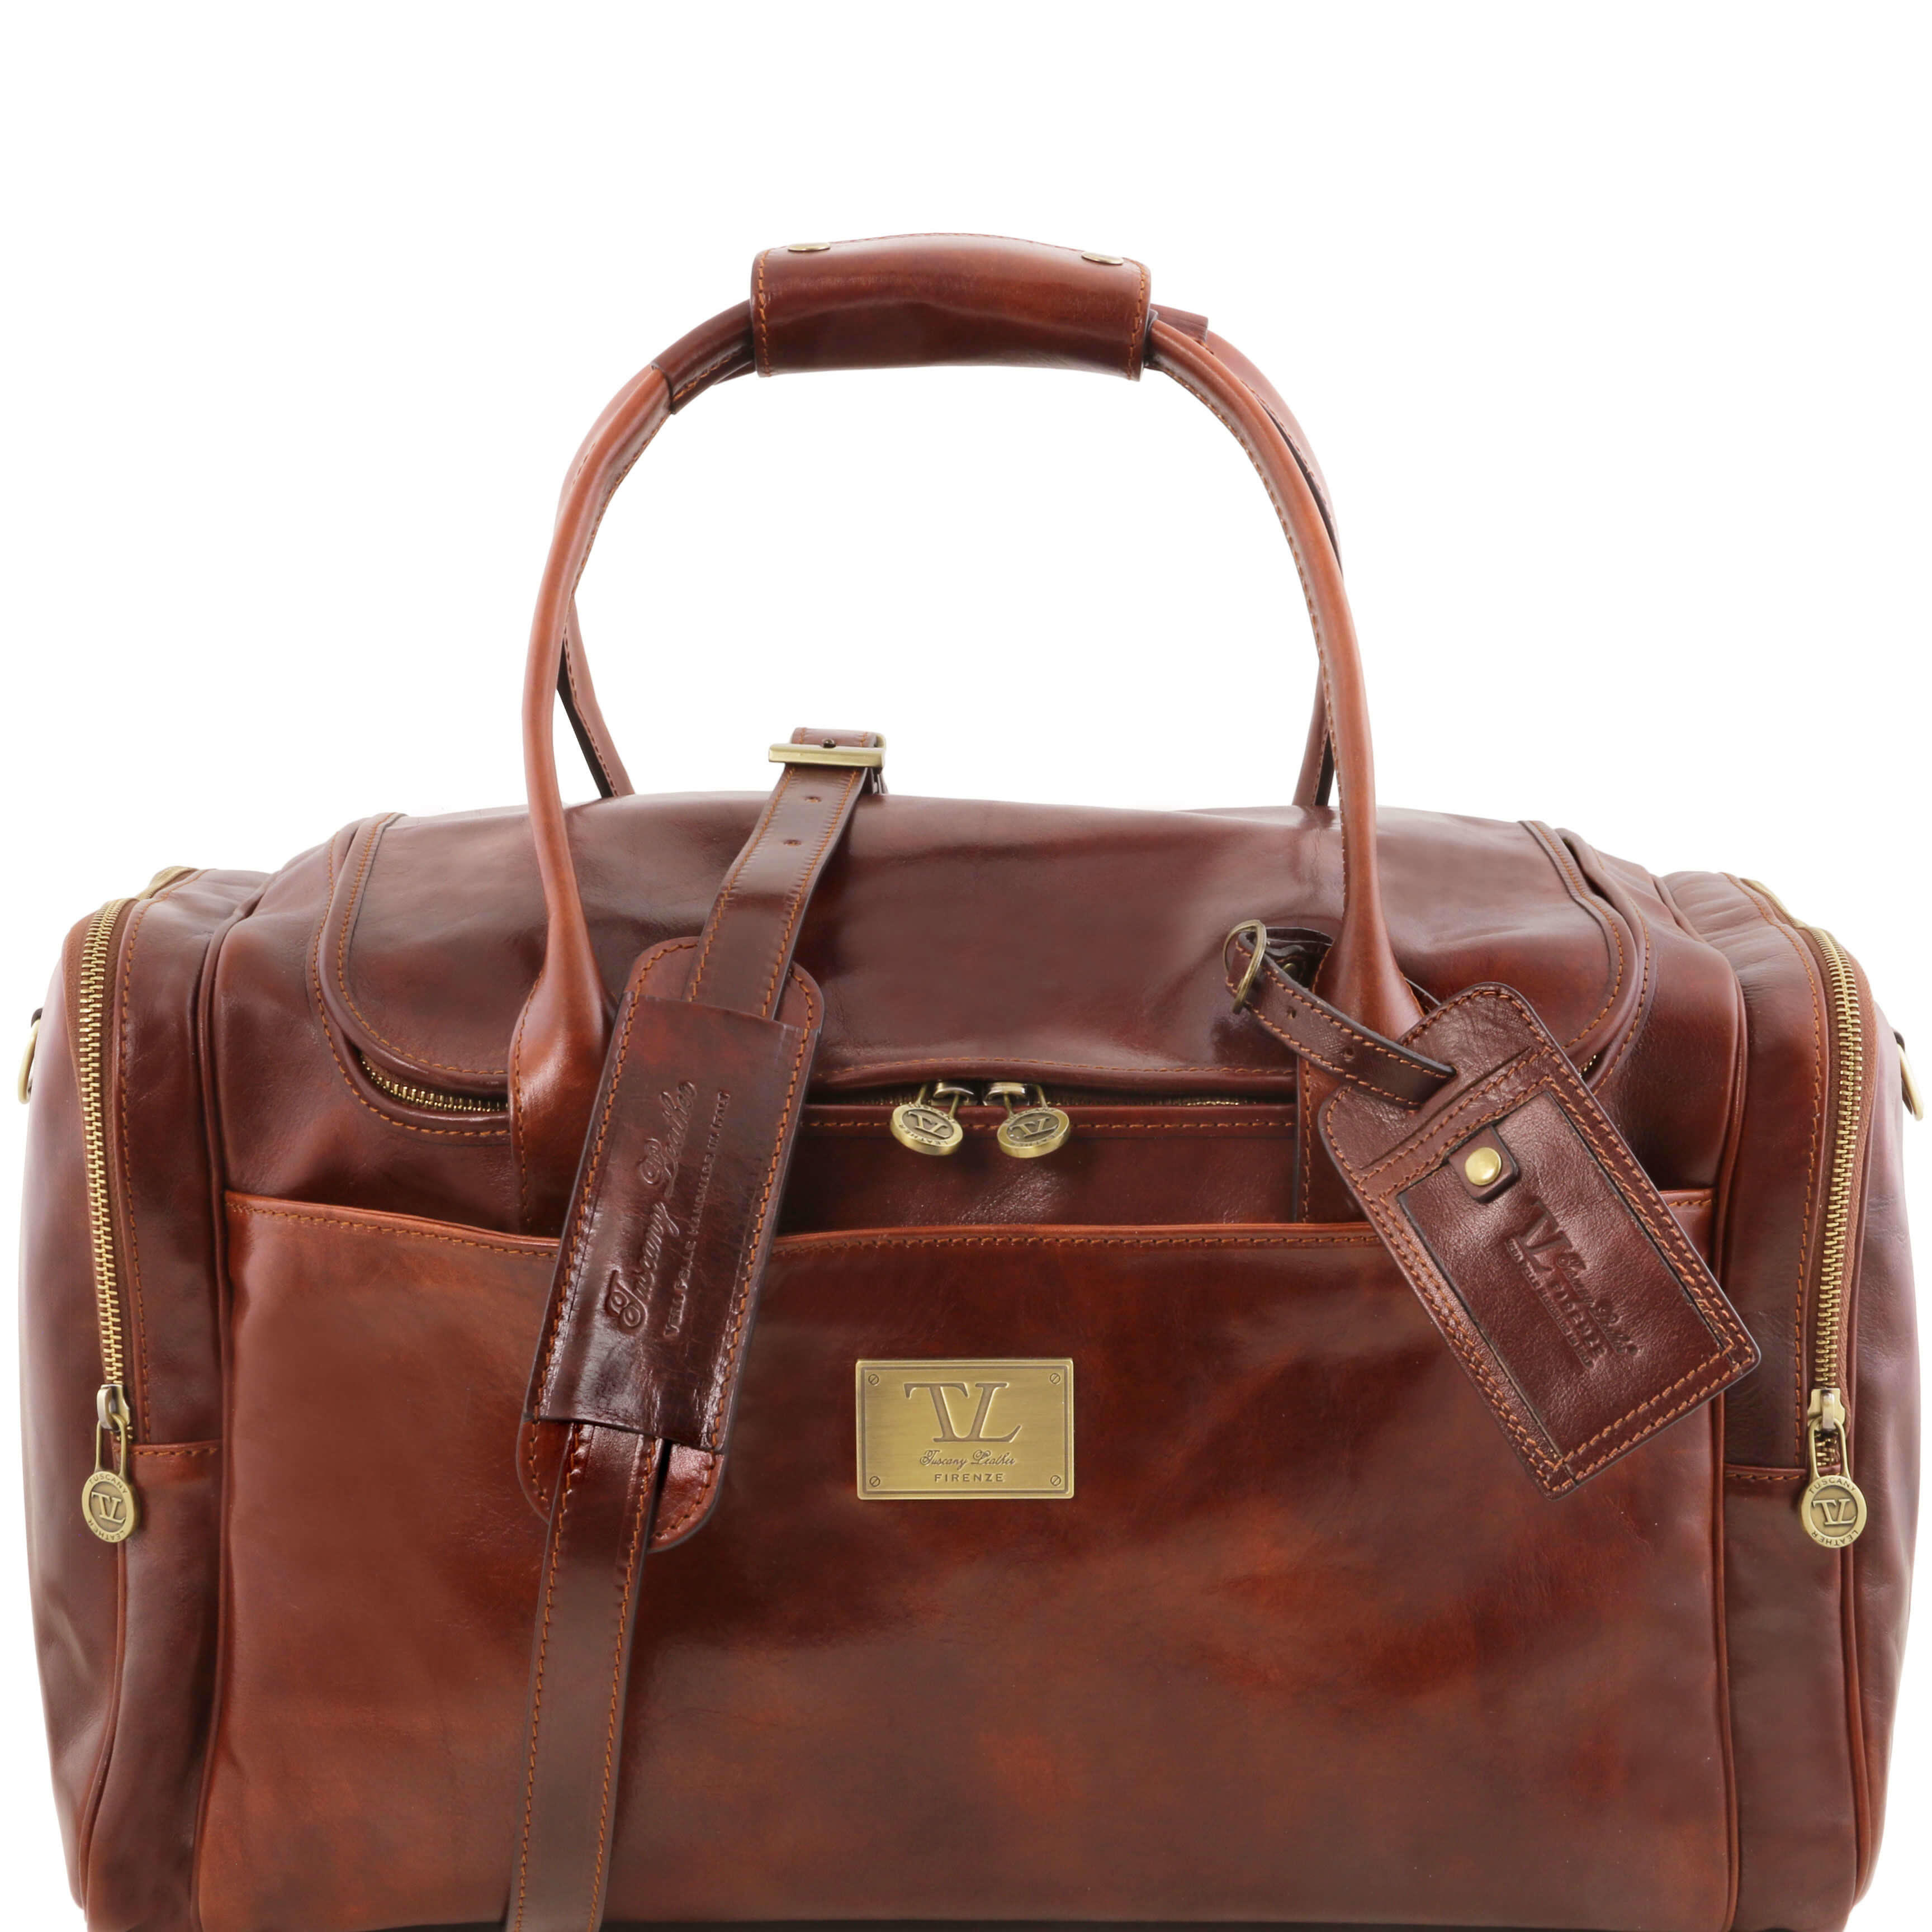 TL141296 Voyager Leather Holdall-Travel-Luggage-Duffel Bag-Case